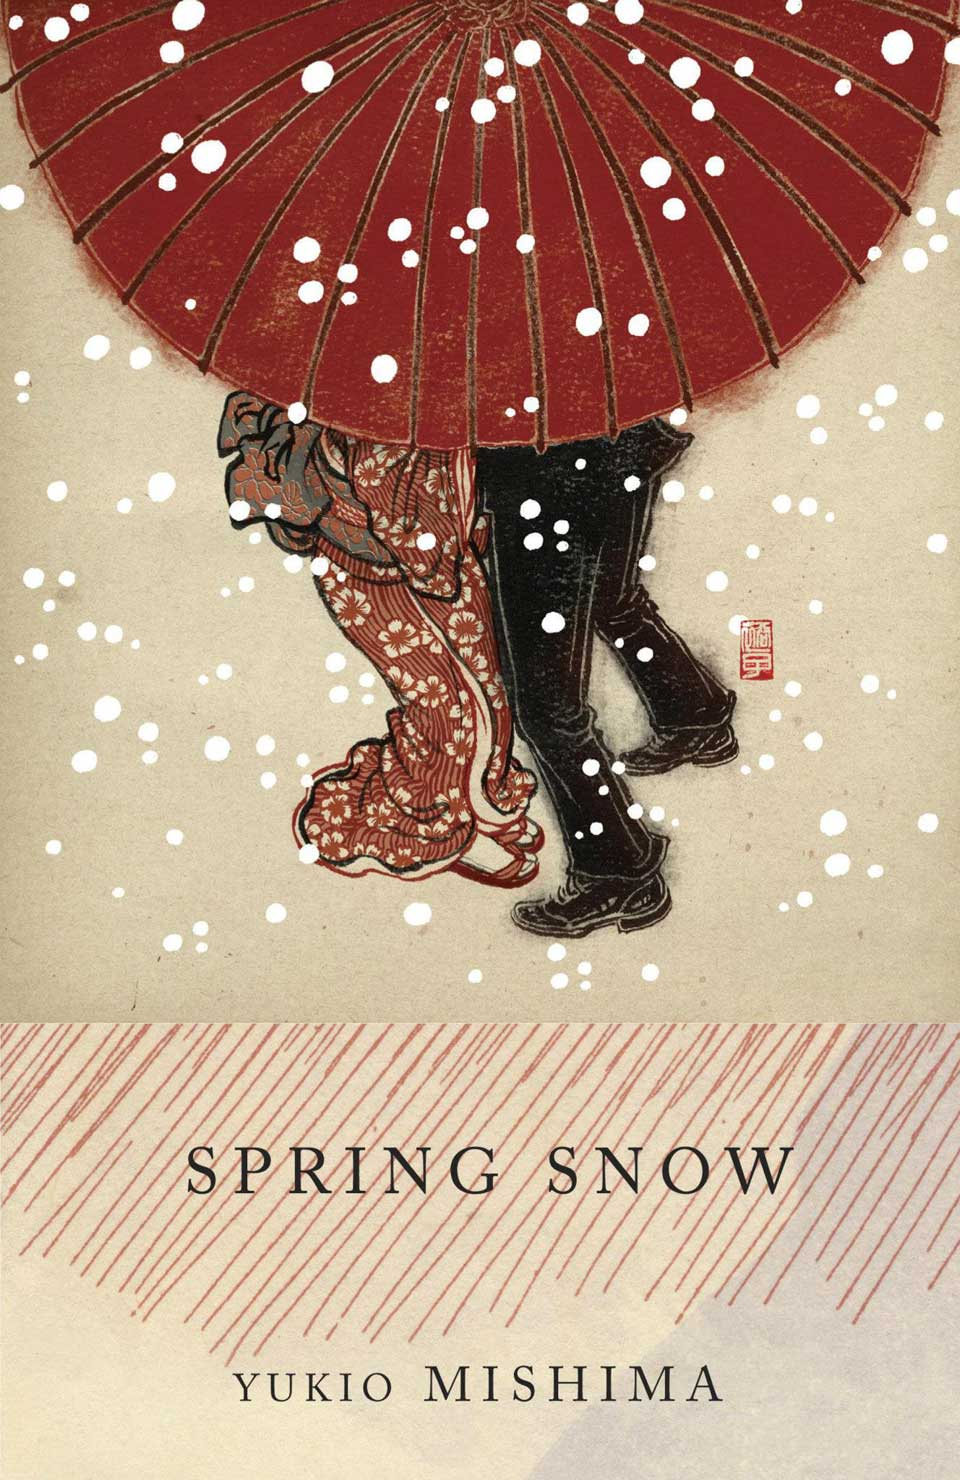 Japanese School Book Cover : Mishima spring snow book cover yuko shimizu